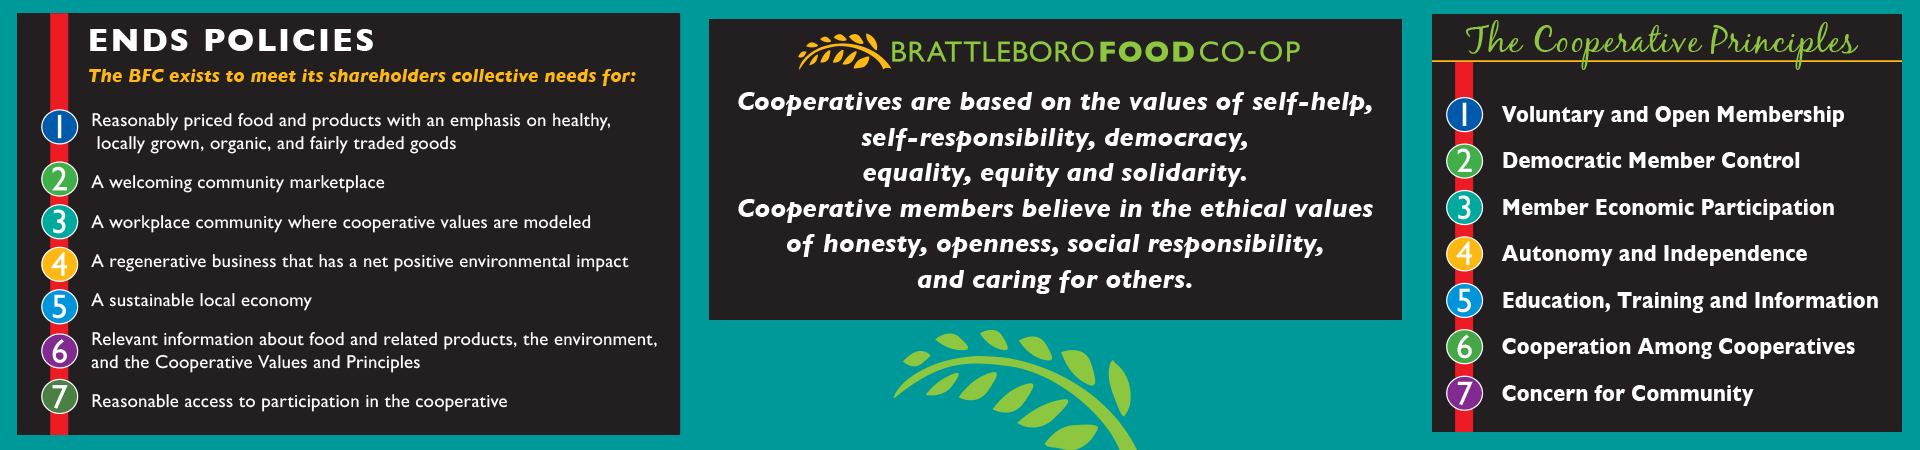 picture of the coop principles, values and ends policies